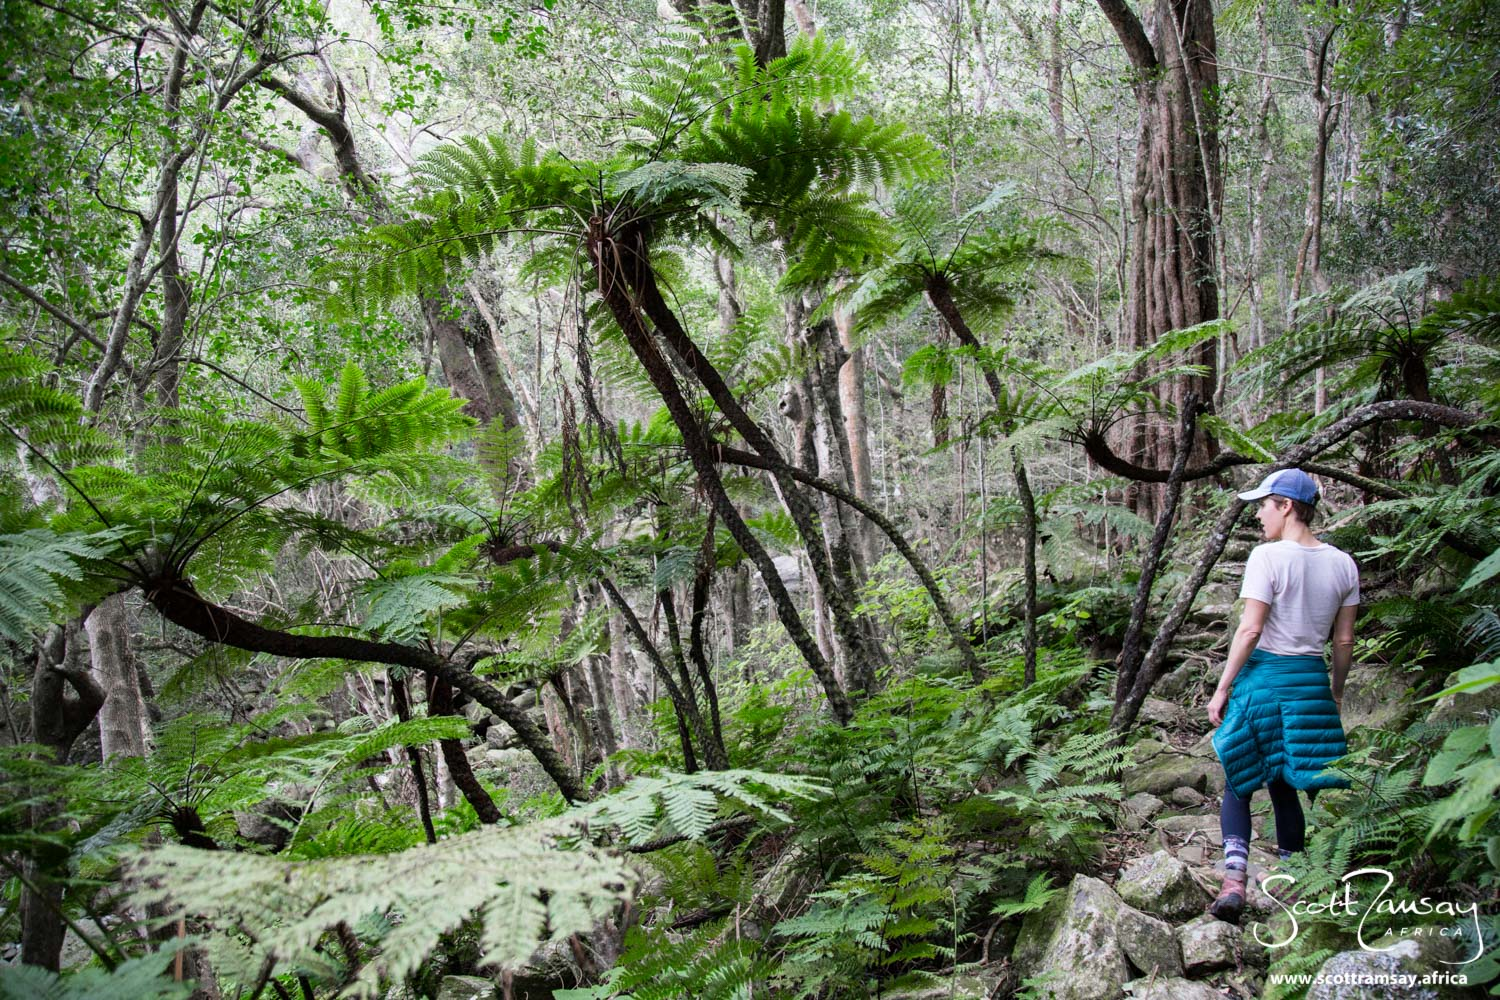 The indigenous forests of Marloth make for great day walks. The forests are relatively easy to get to from the main gate a few kms north of Swellendam